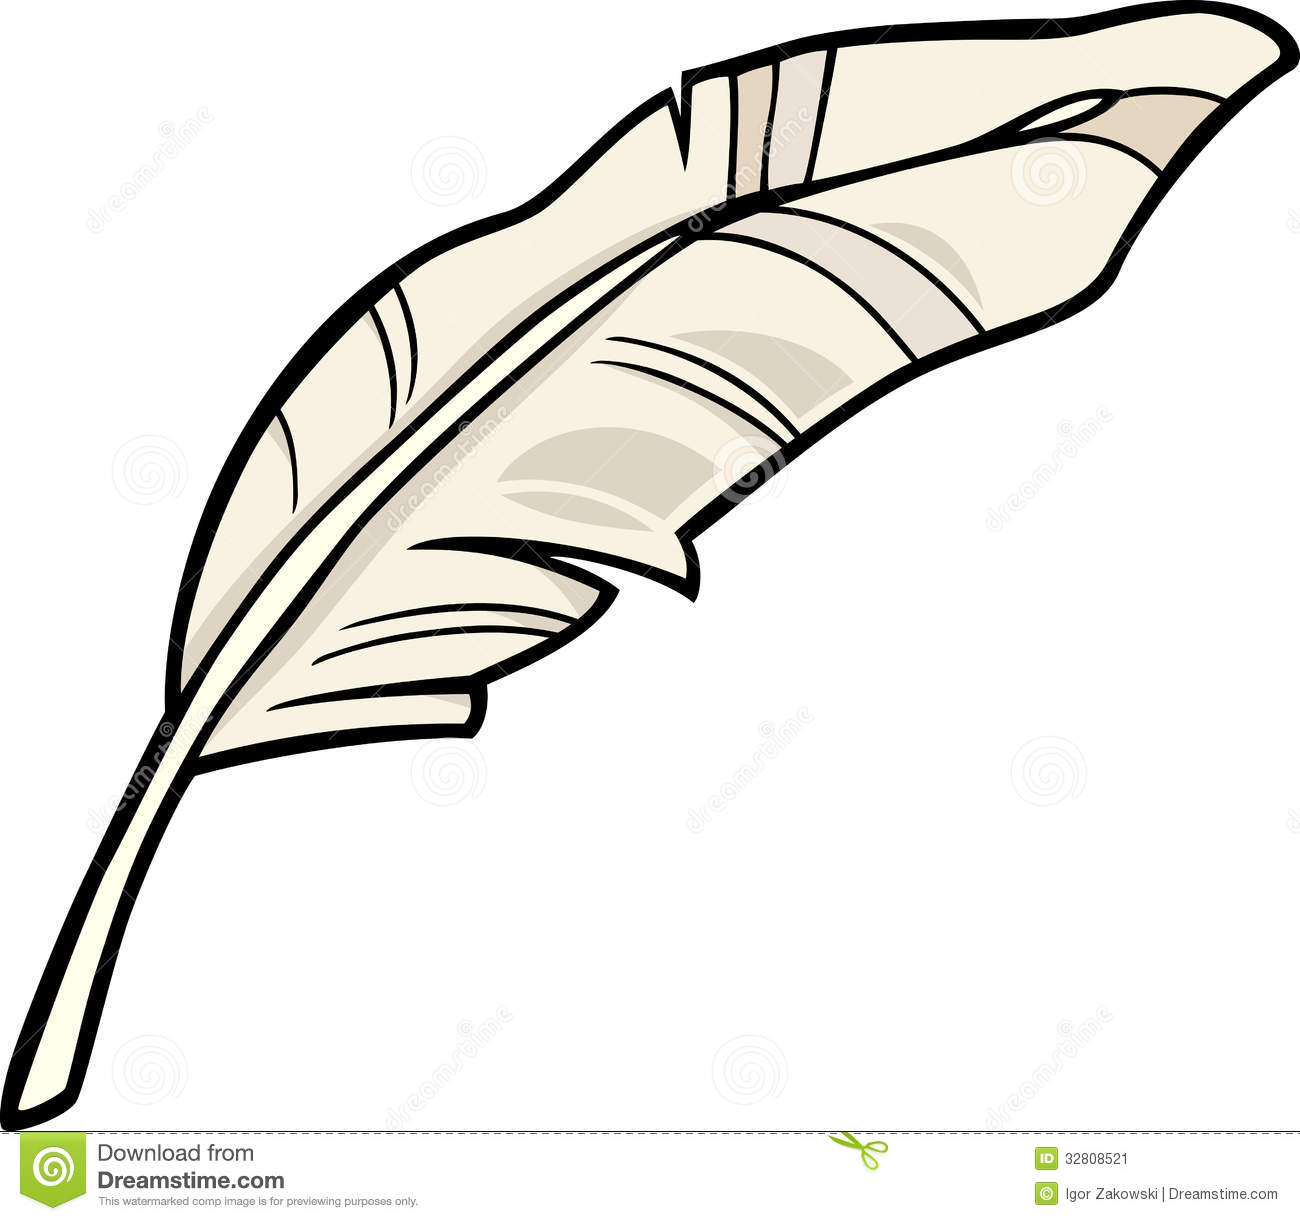 Clipart feather.